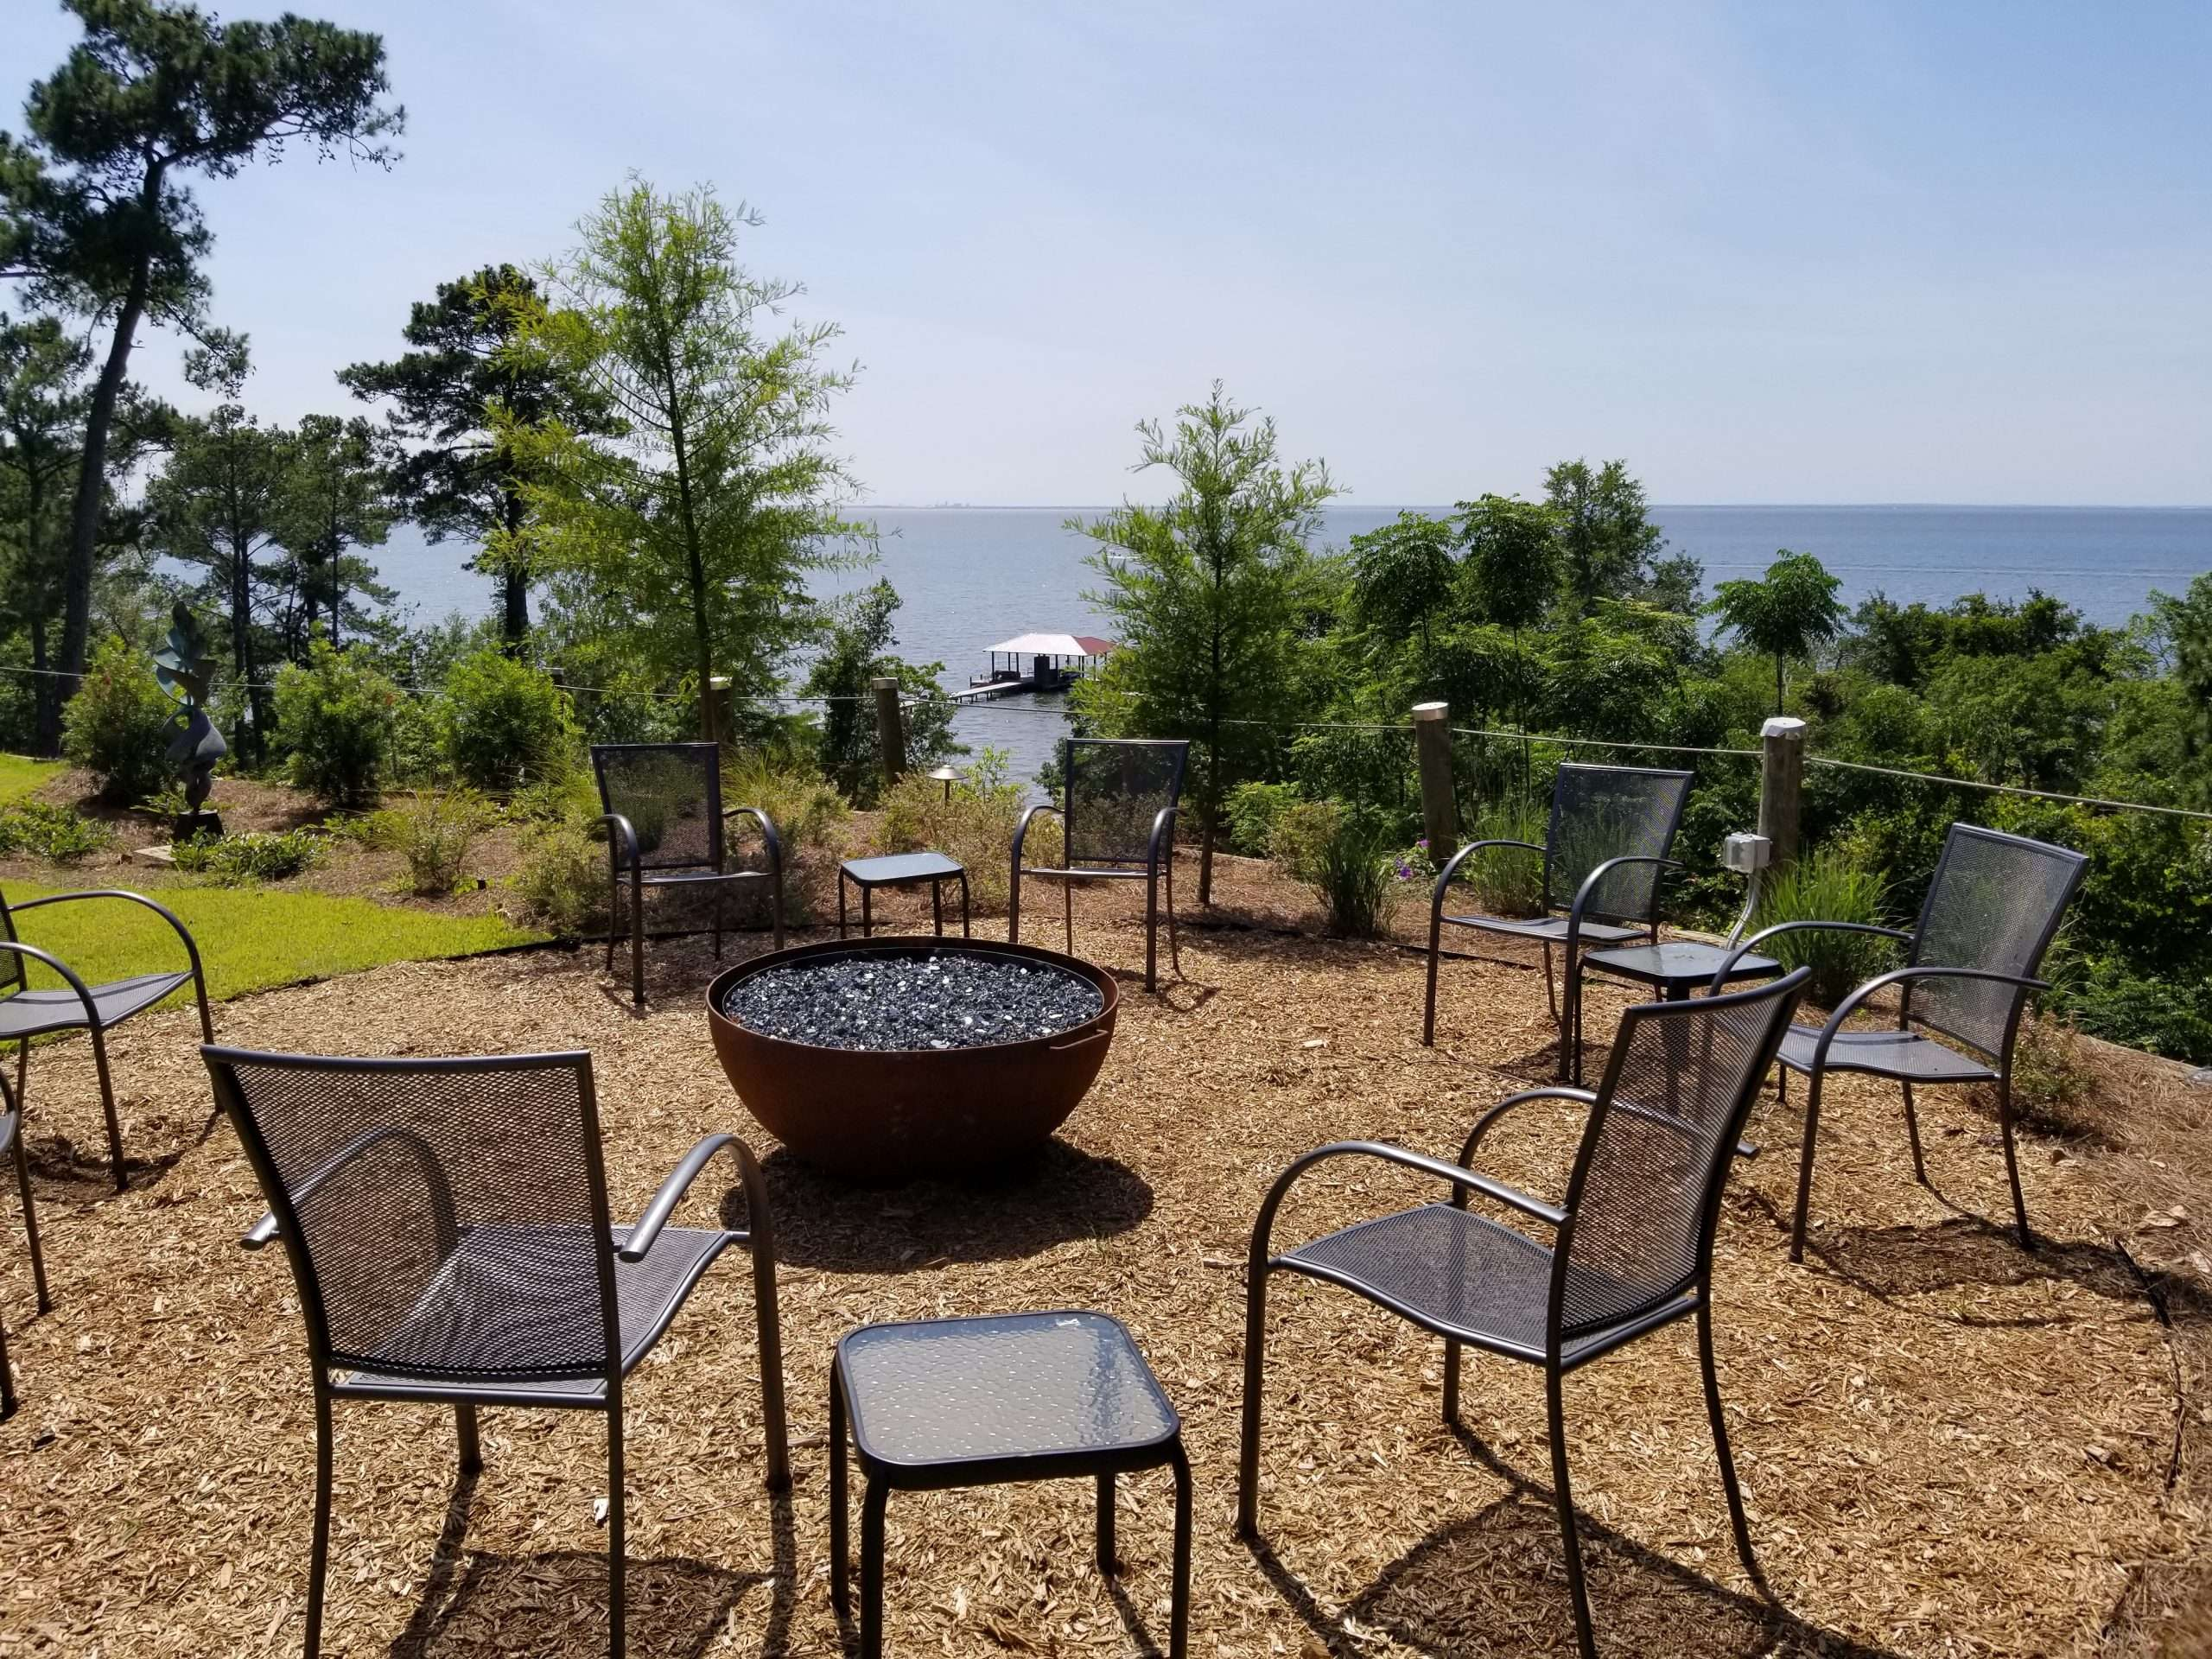 Jubilee Suites, Fairhope, AL- Fire Pit Gathering Area